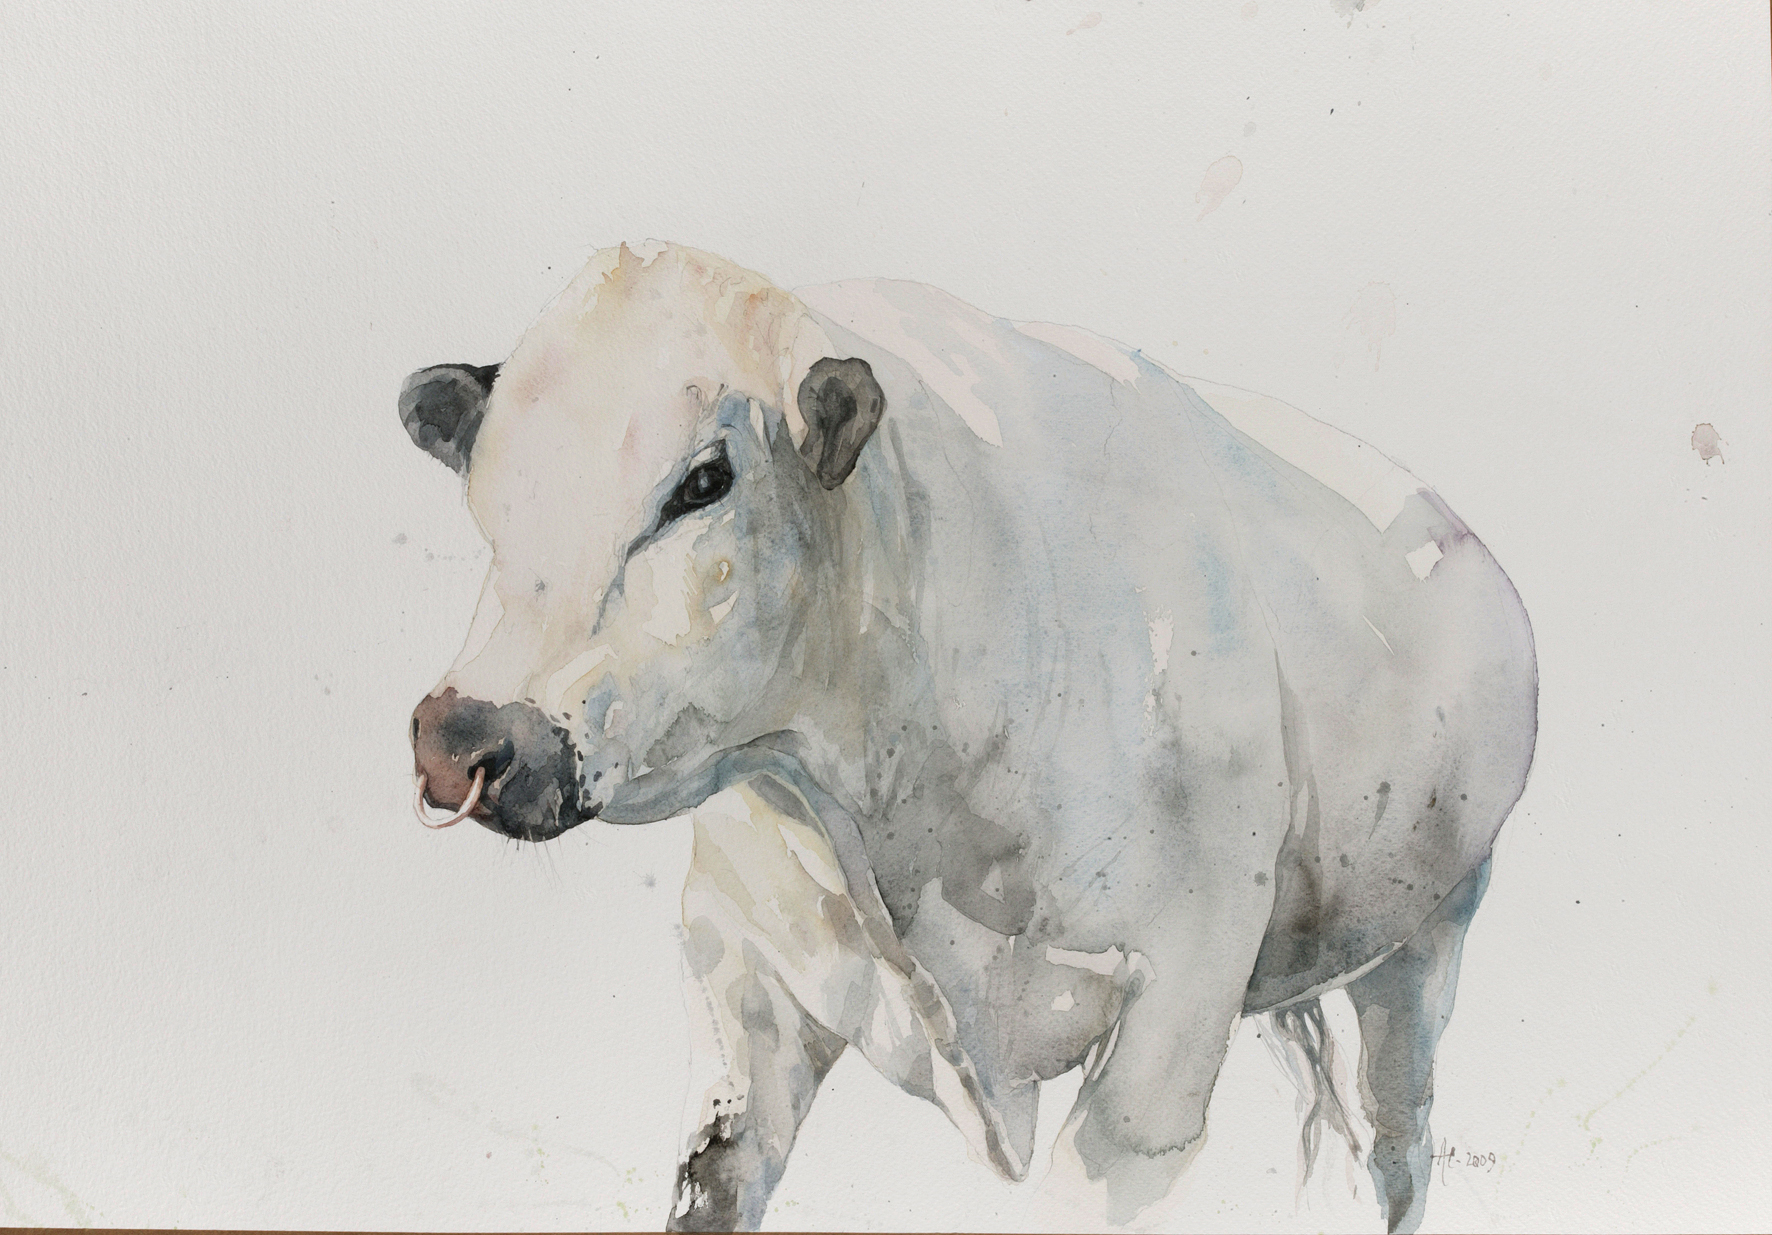 White Bull on Cley Marshes